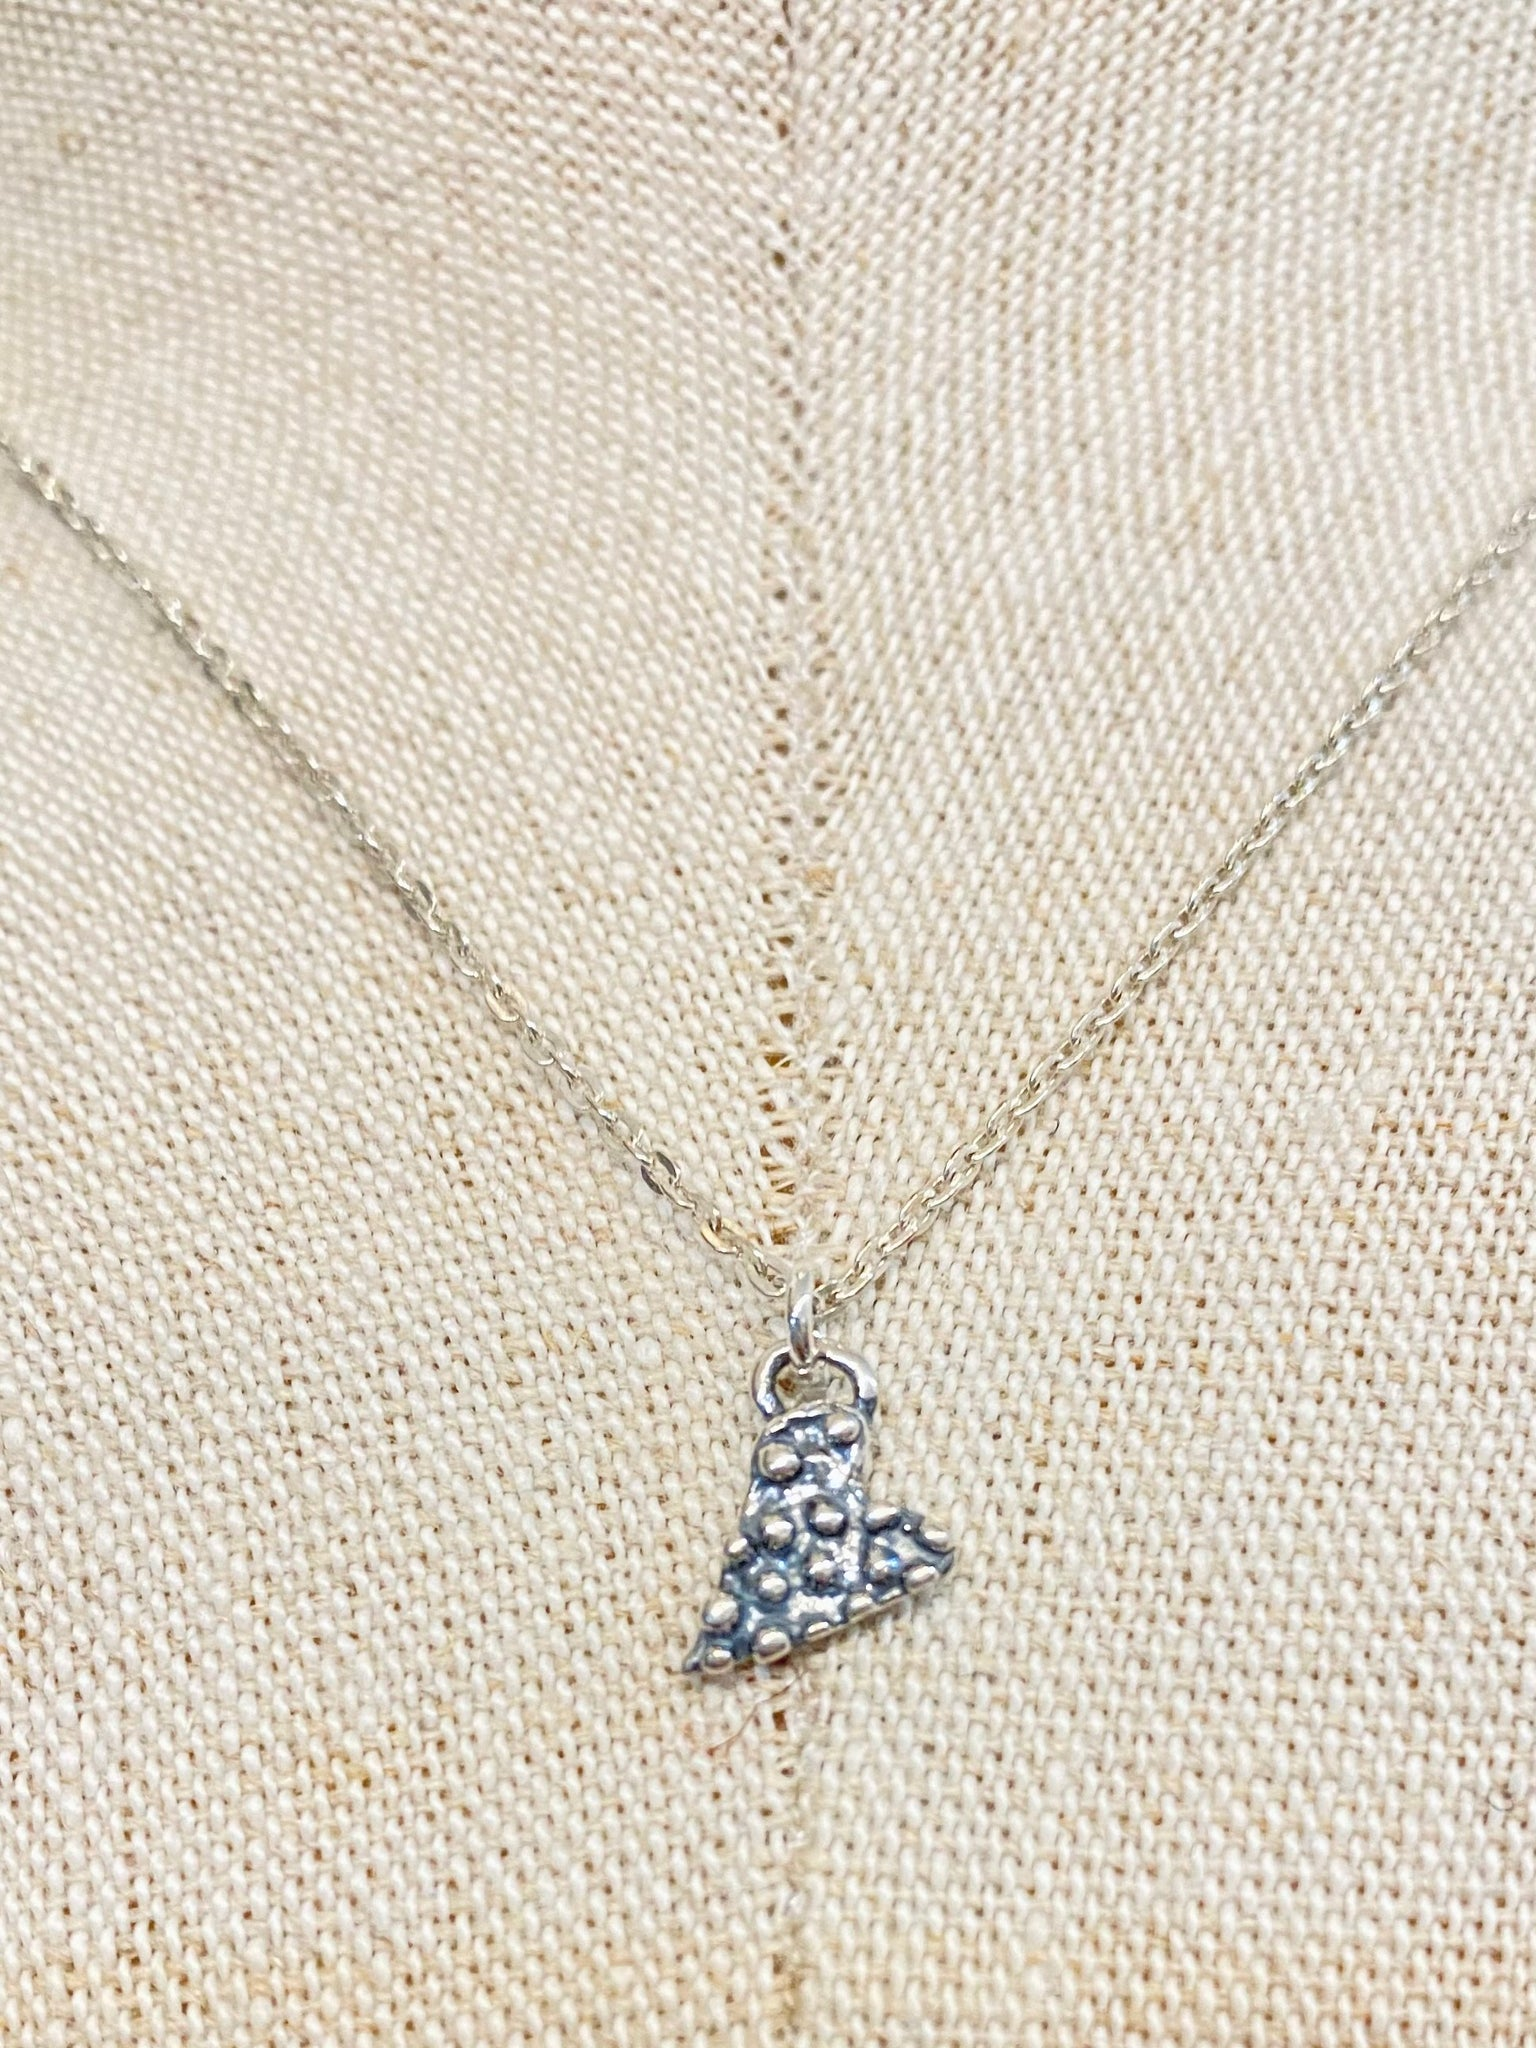 Dainty Heart Charm on Sterling Silver Necklace